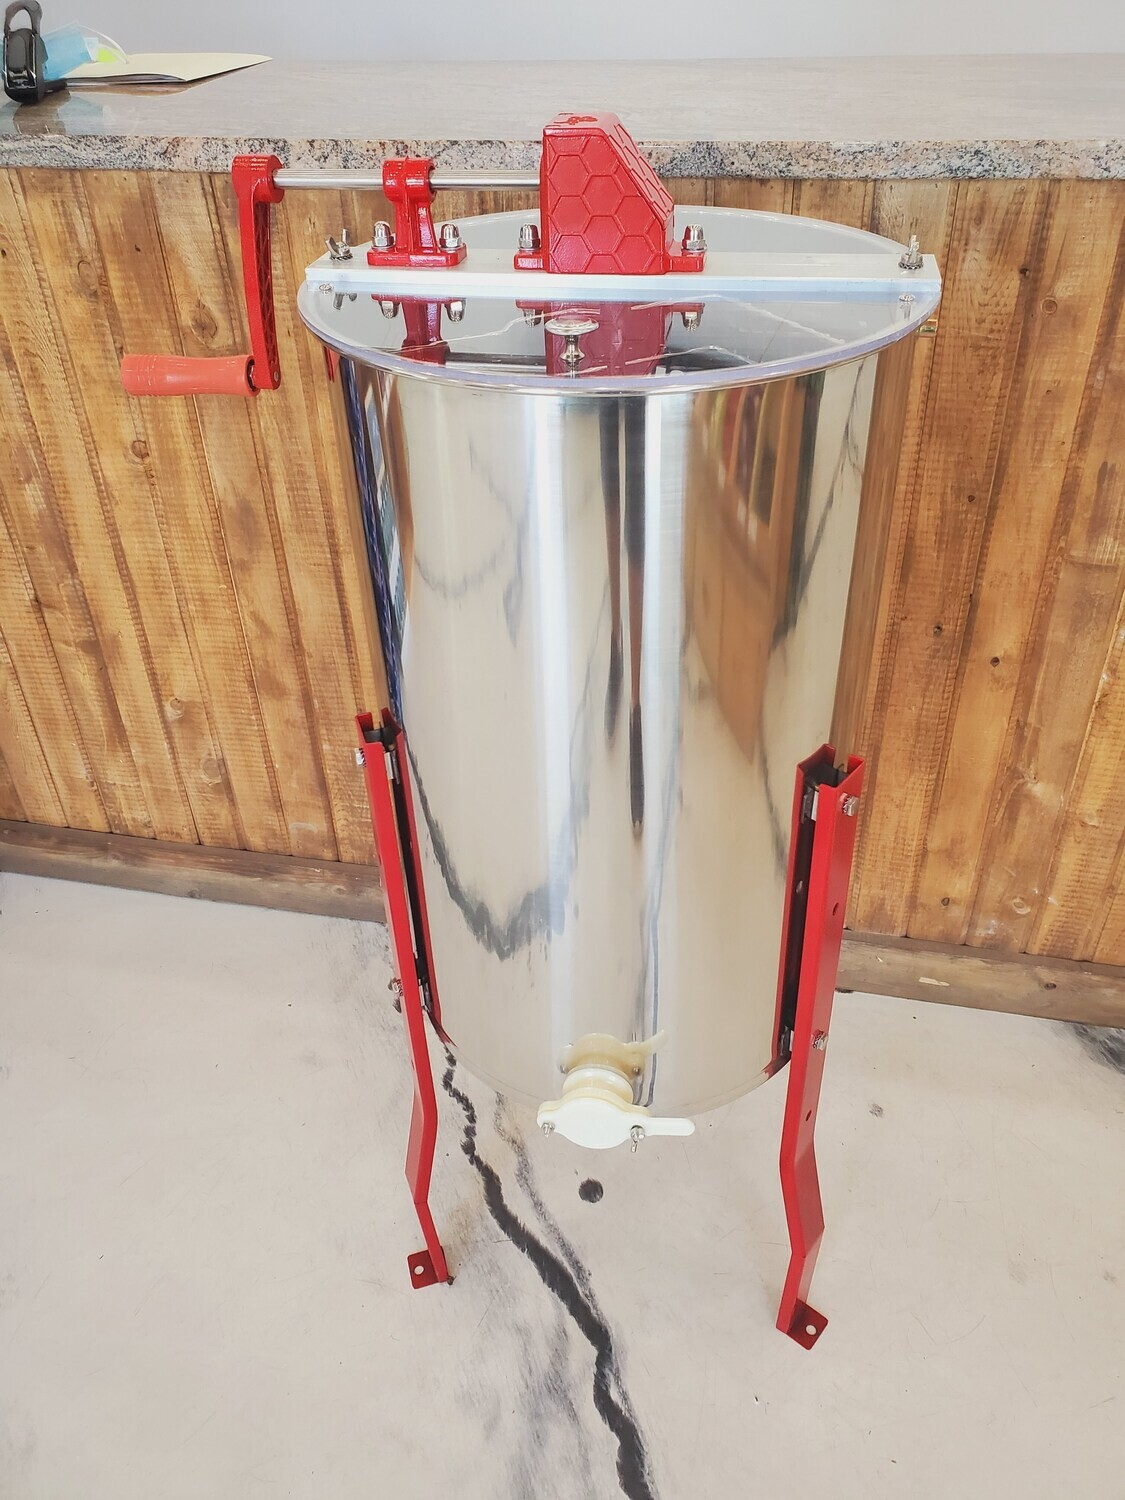 2 Frame Manual Extractor